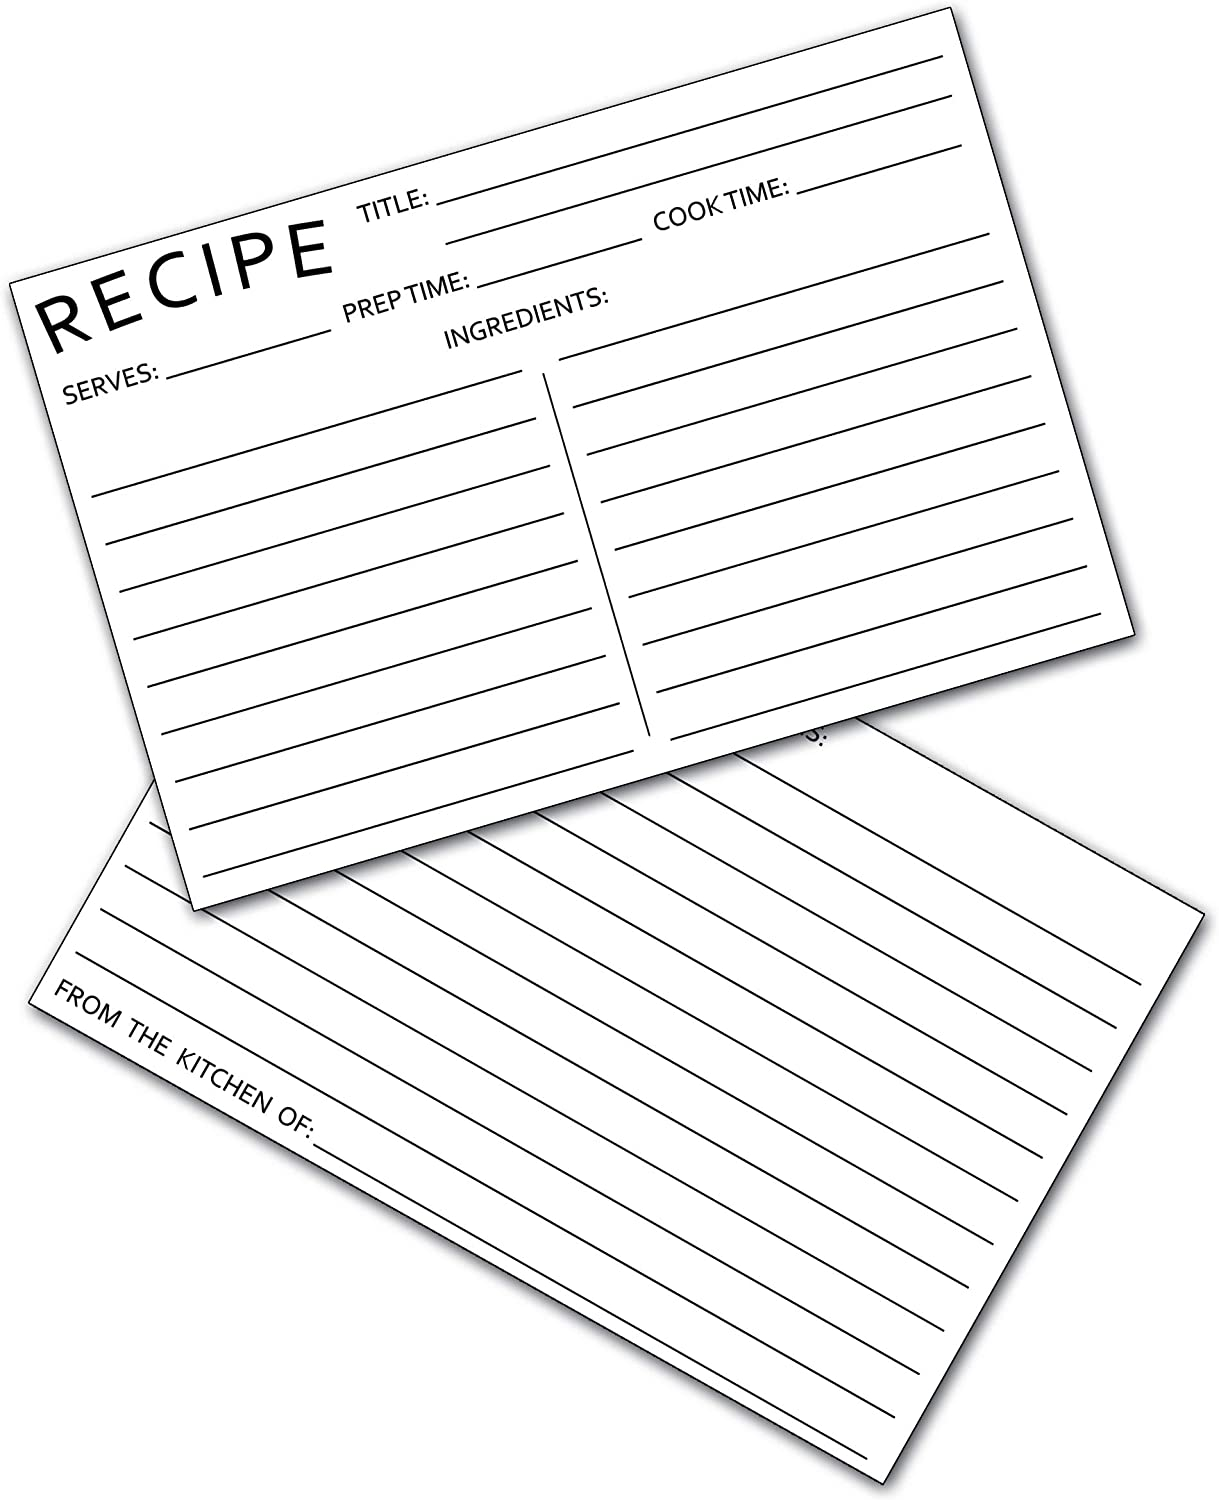 50 Recipe Cards - 4x6 Double Sided Premium Black and White Postcards